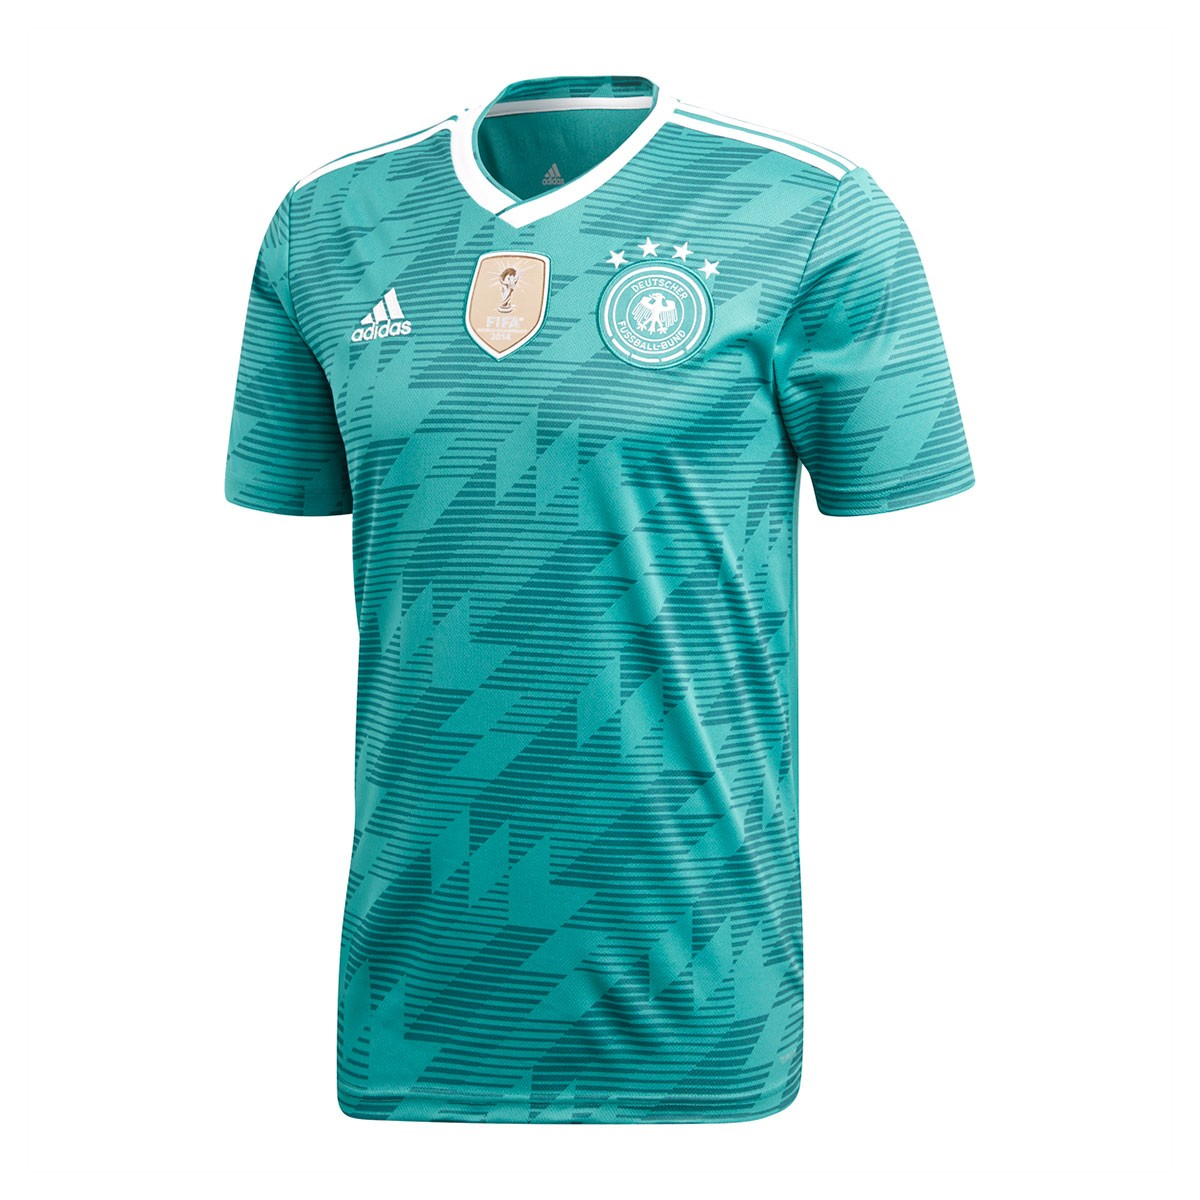 1dbe185b8 Jersey adidas Germany 2017-2018 Away Green-White-Real teal ...